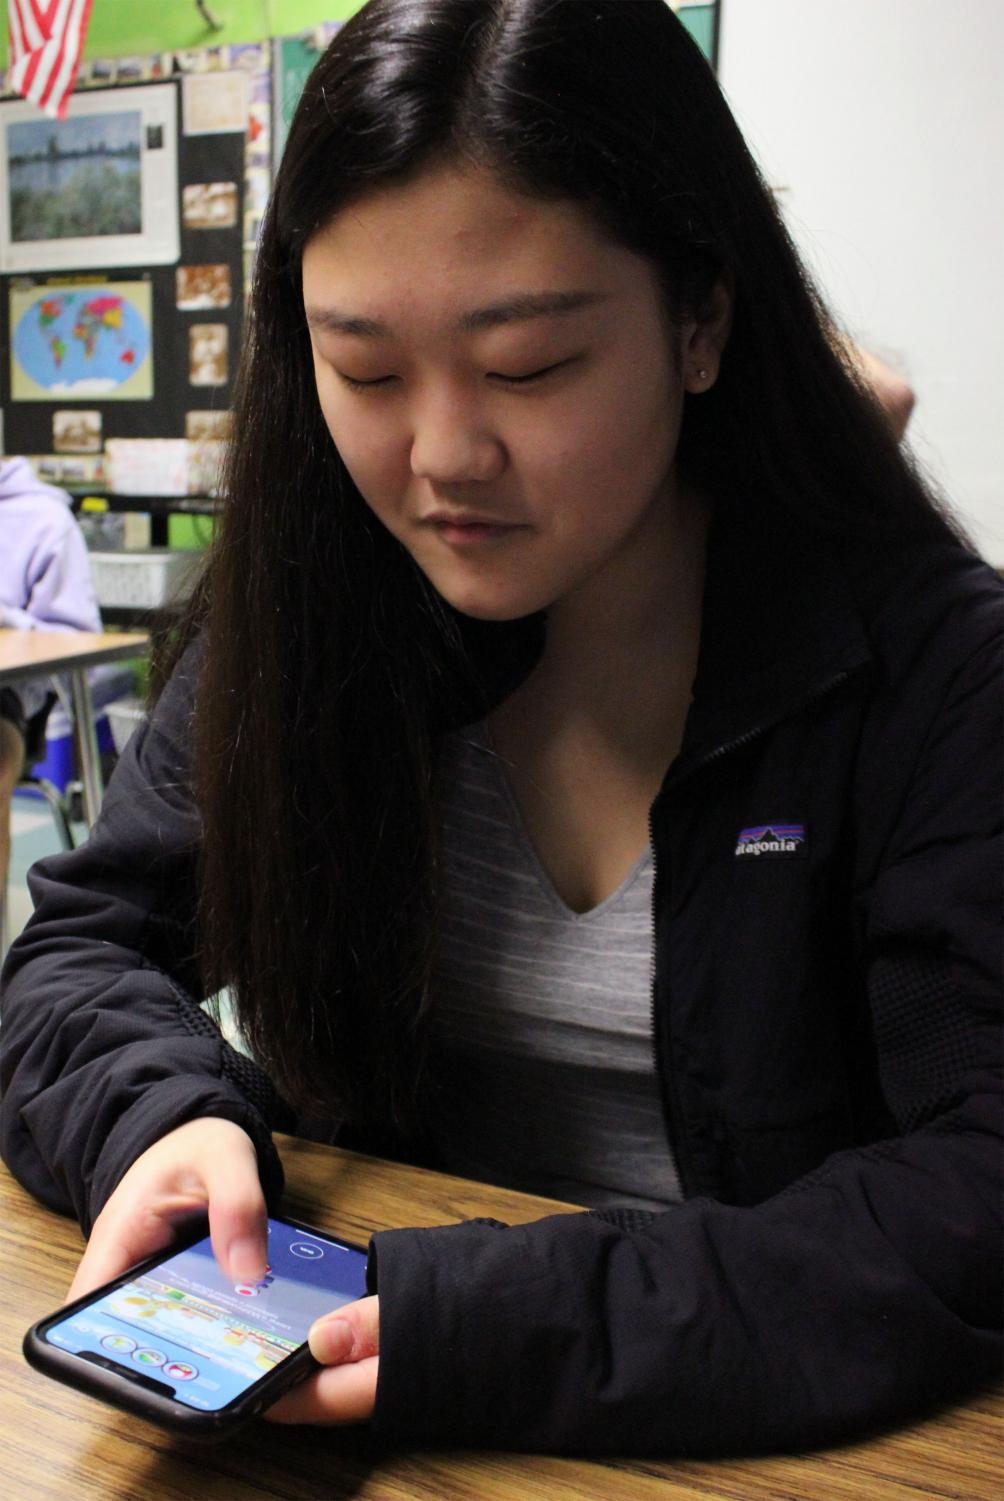 ON+YOUR+MARKS%3A+Sophomore+Yuri+Lee+spends+time+the+world+of+Mario+Kart%2C+racing+against+her+classmates+on+the+new+app.